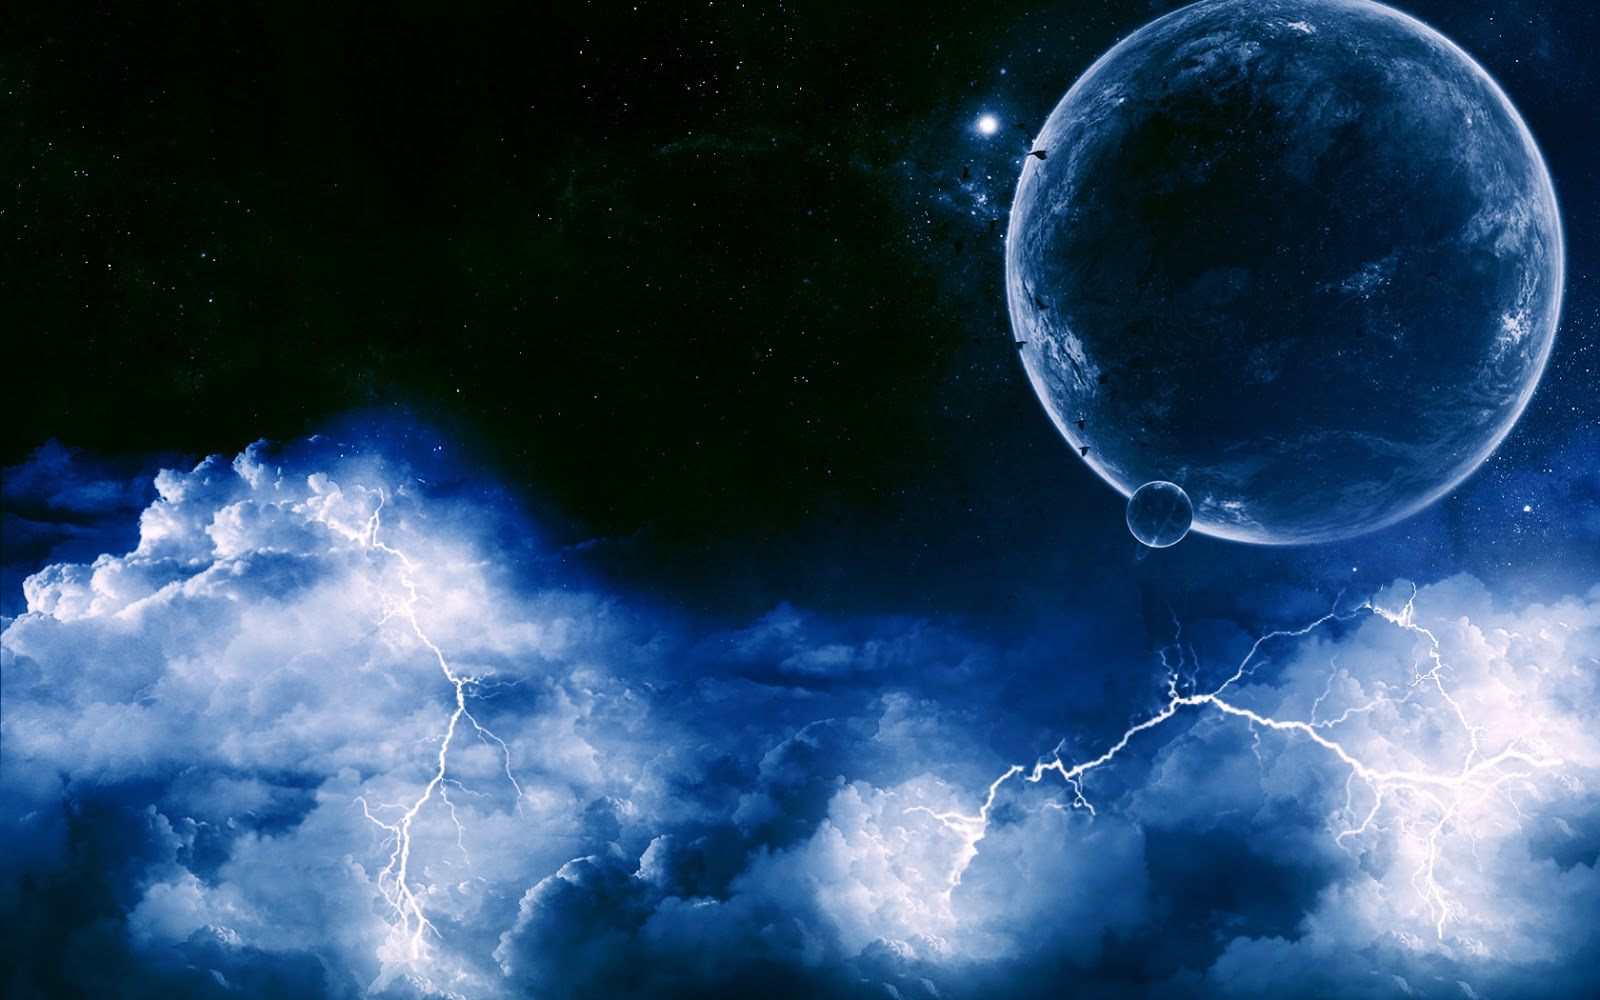 SPACE WALLPAPERS HD 1080p  Top Hd Wallpapersz